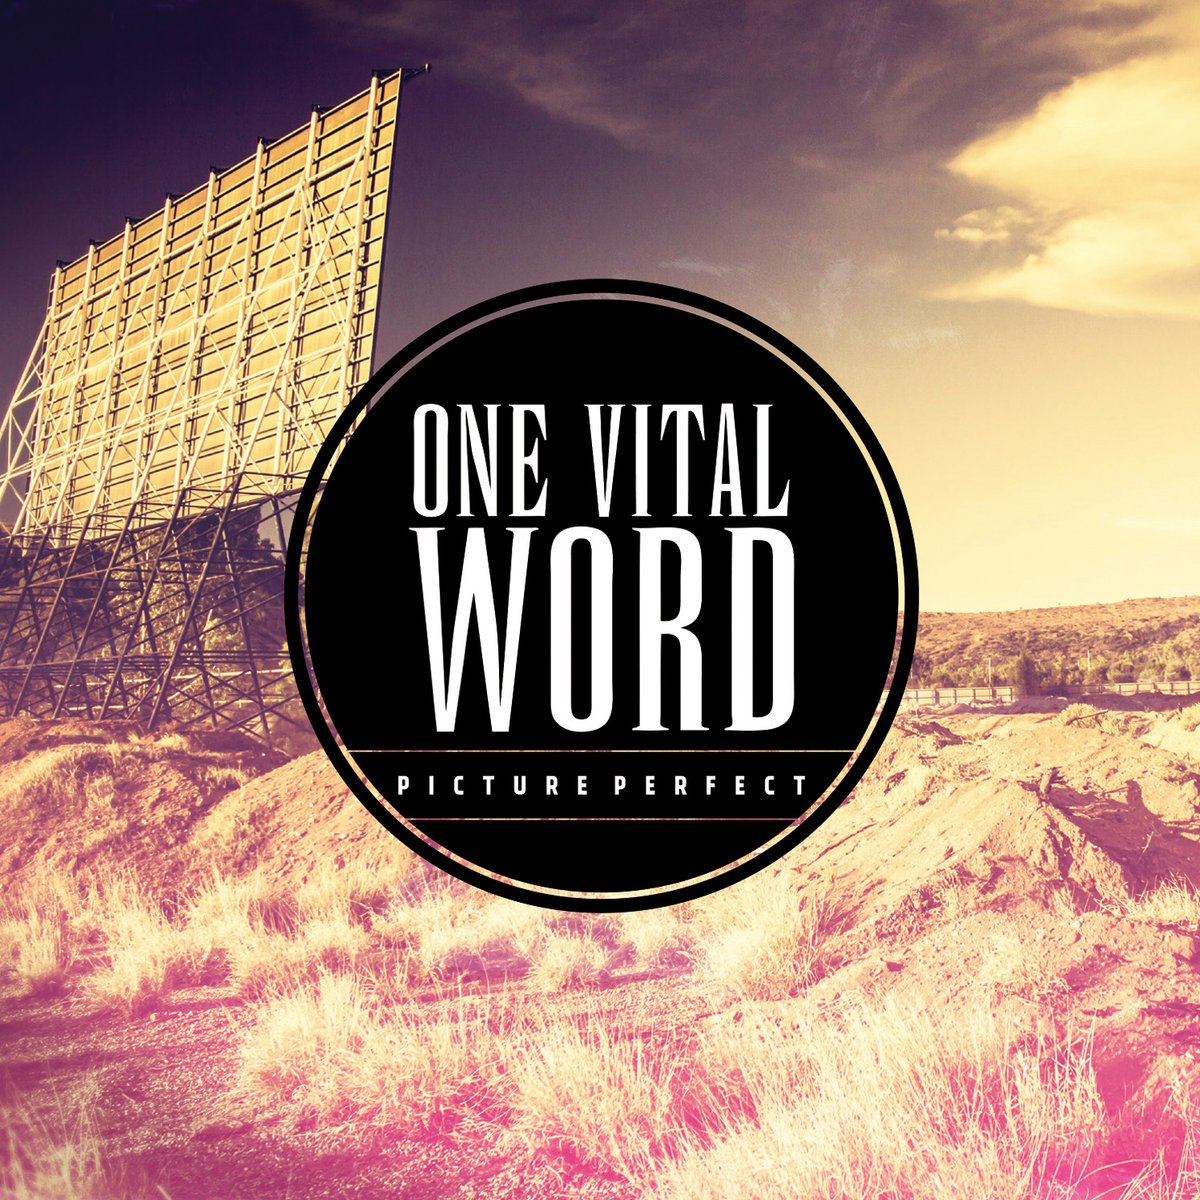 One Vital Word - Picture Perfect (2013)